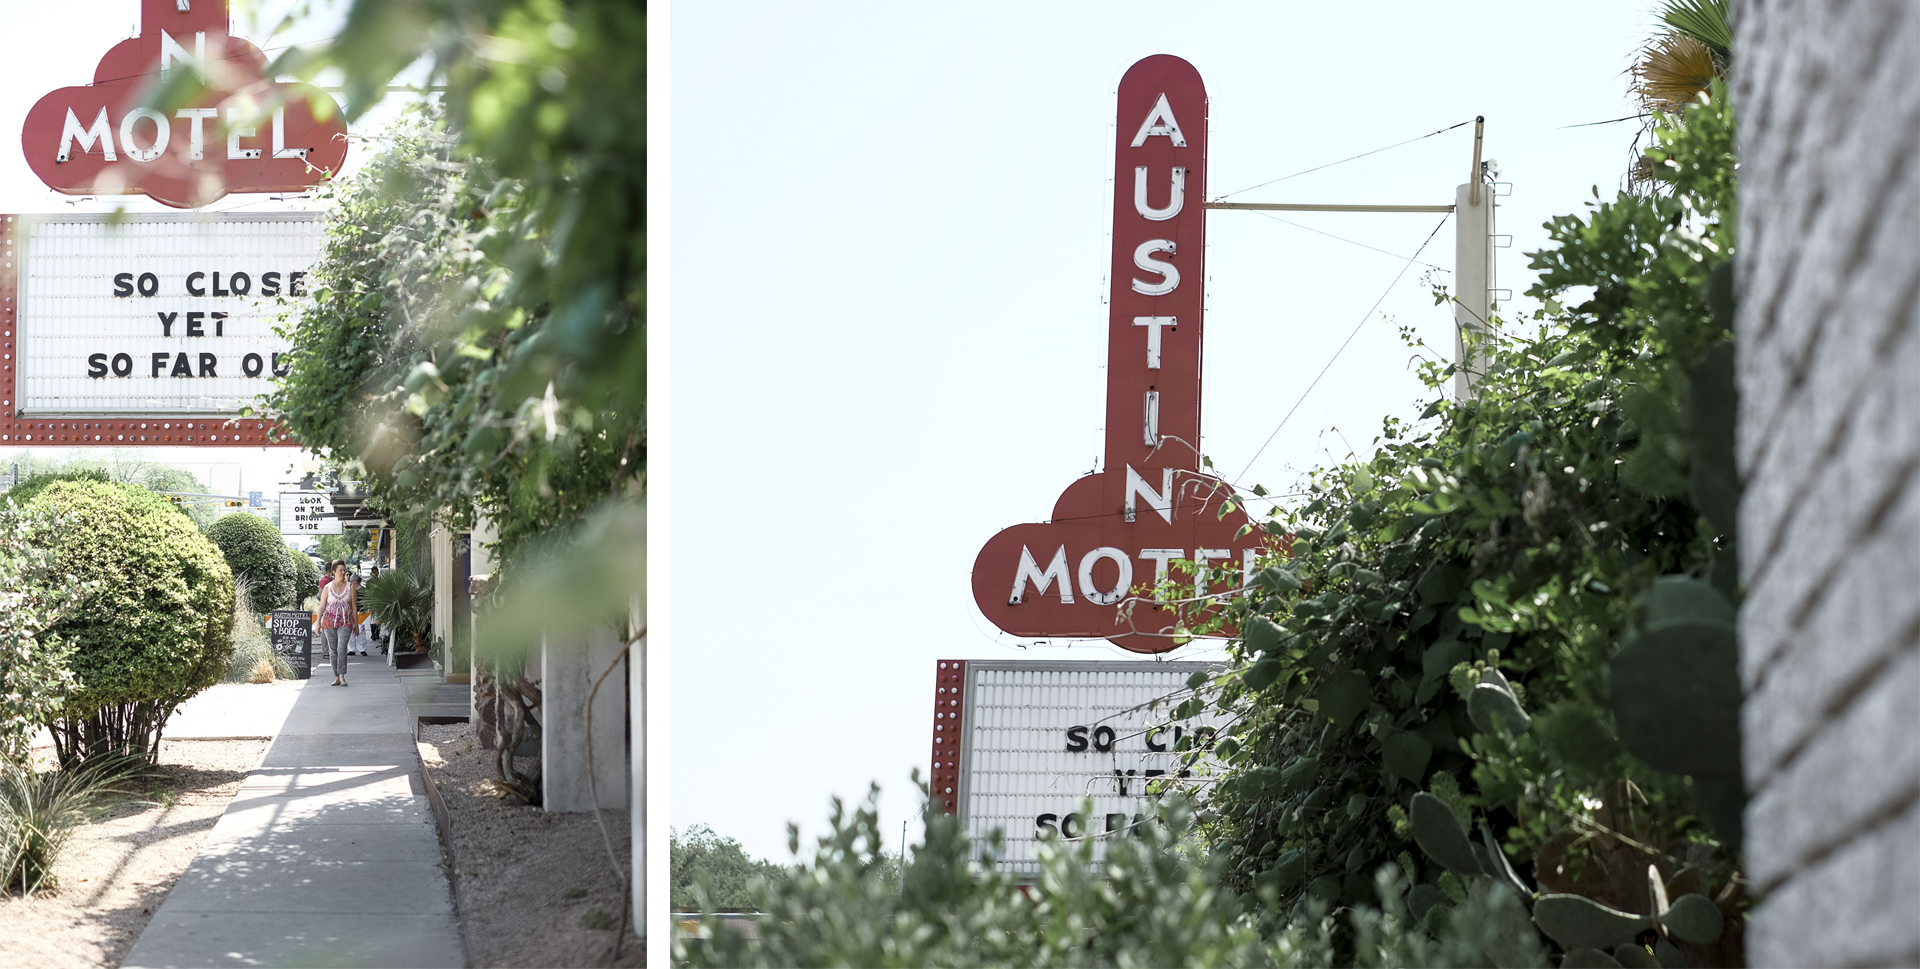 Sugestive sign of the Austin Motel